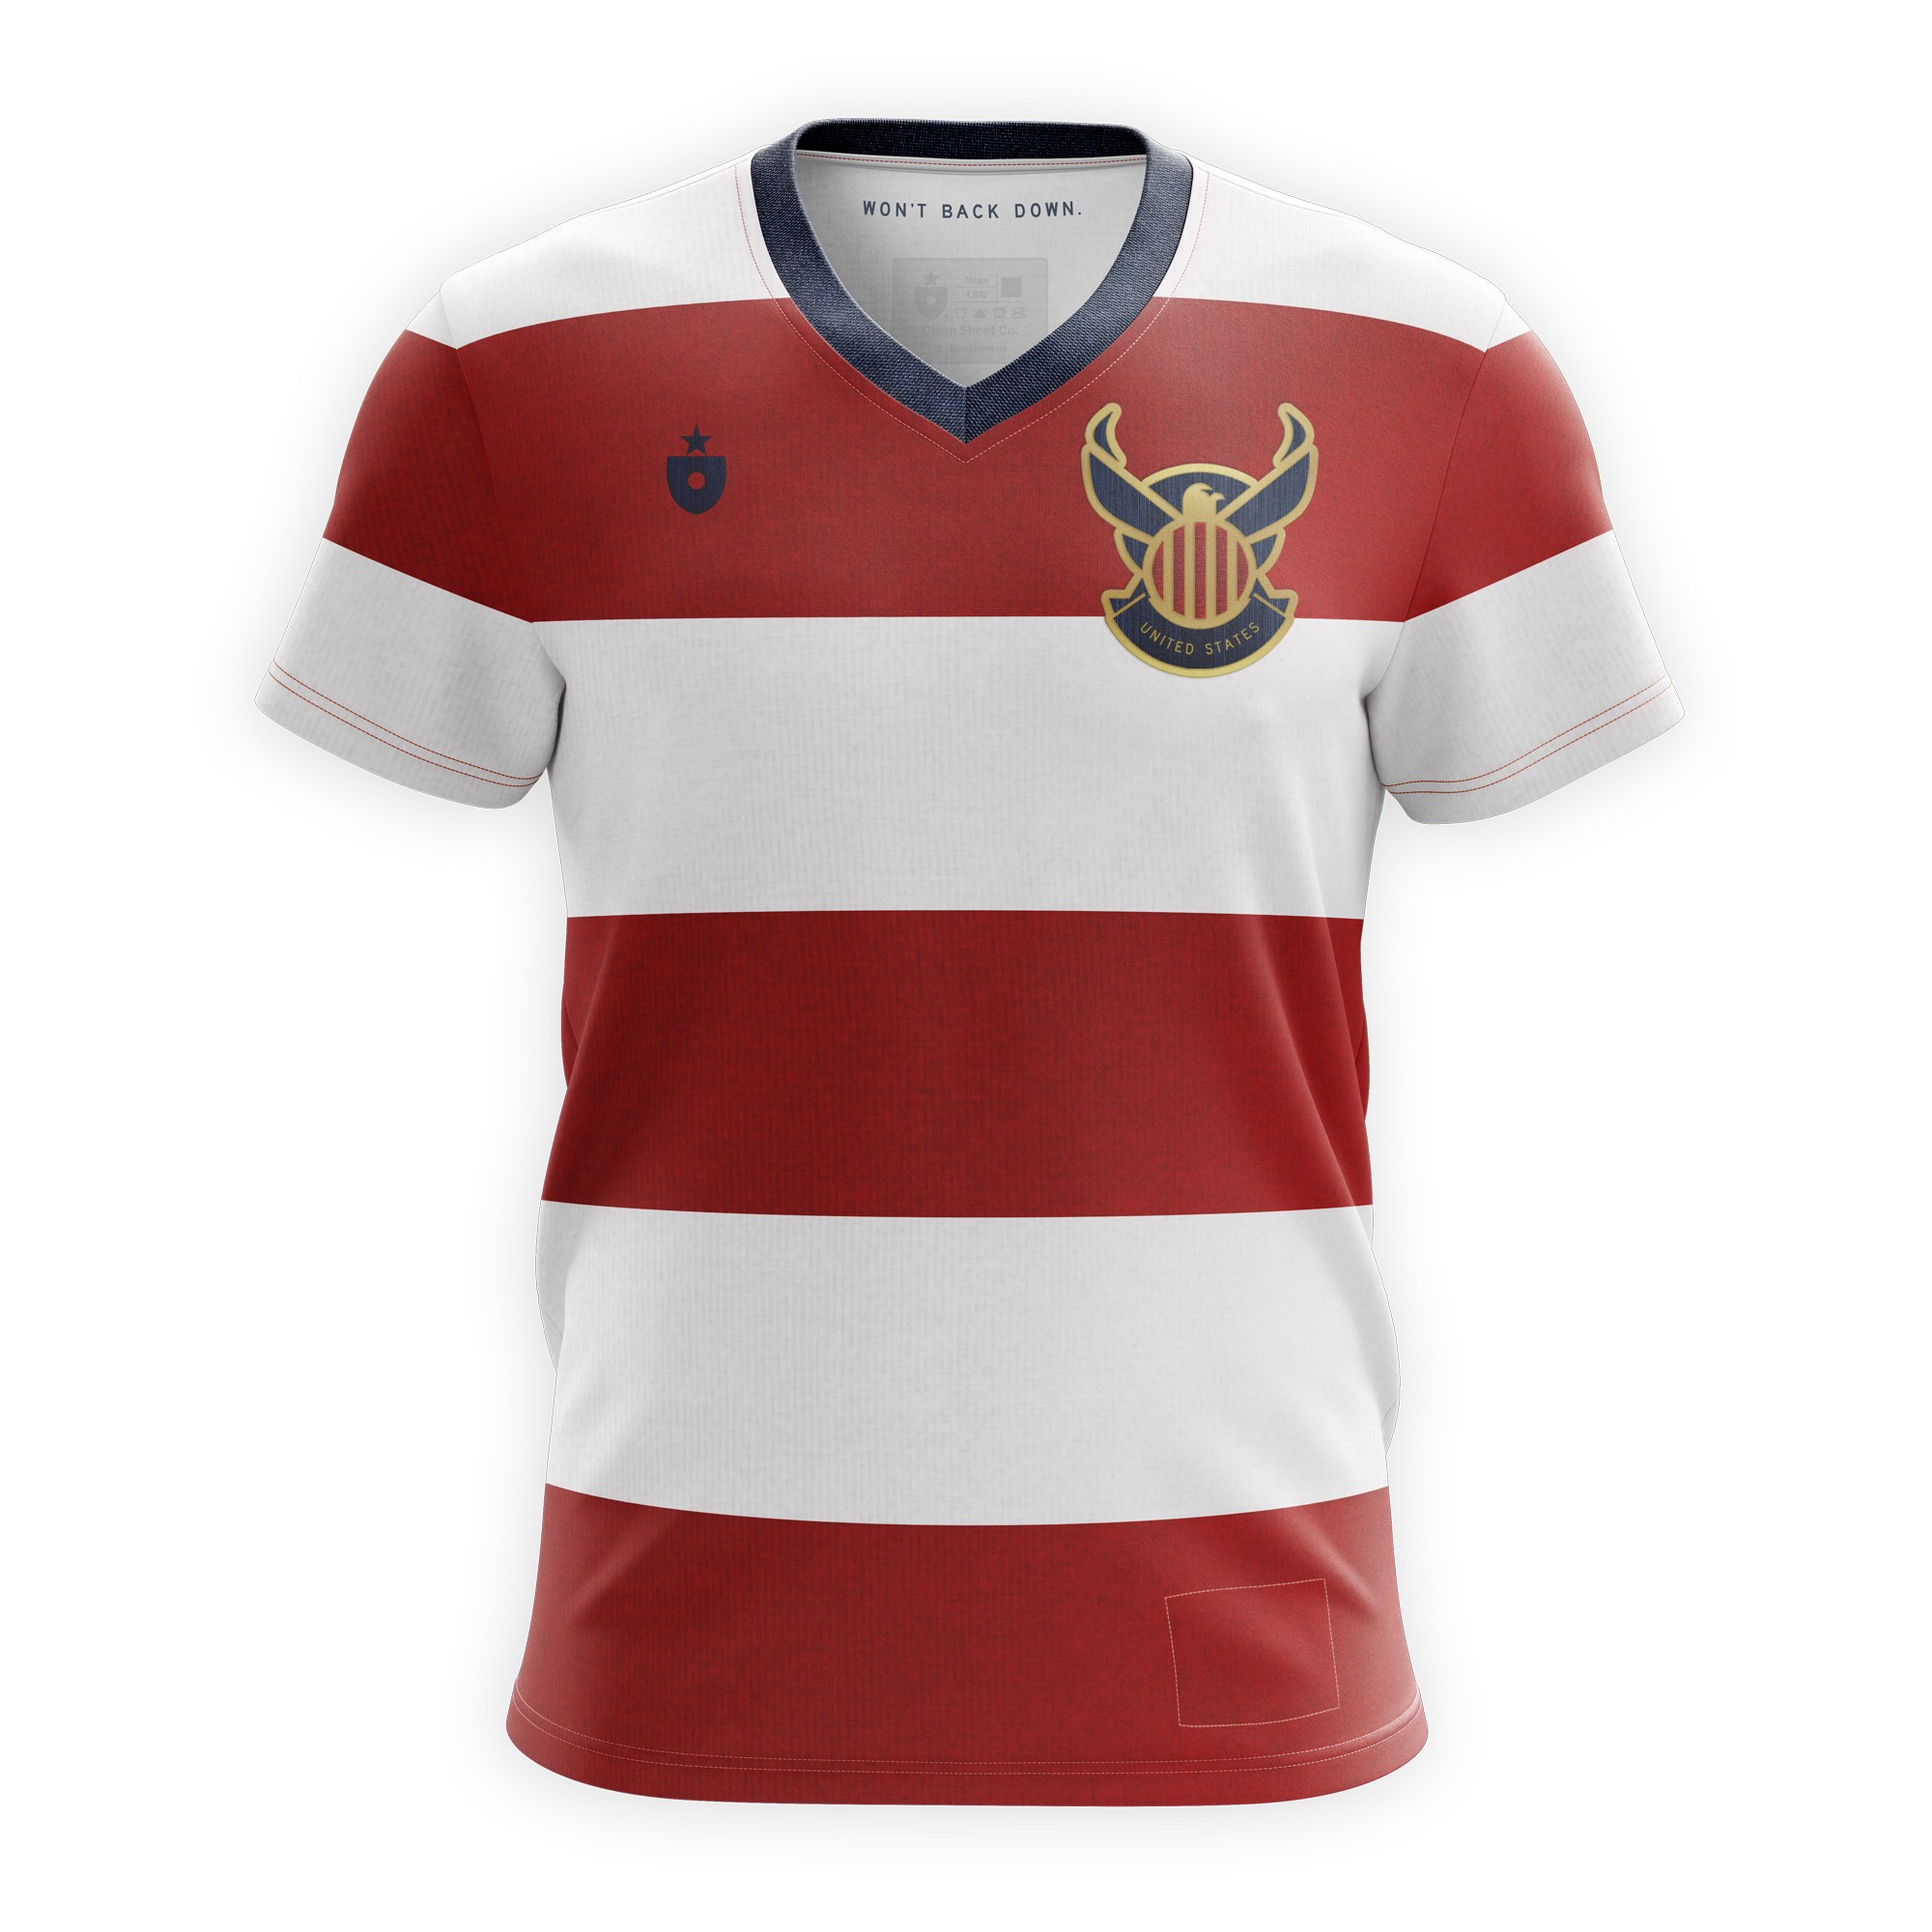 more photos 128a6 833cc We're making a jersey for independent American soccer fans.